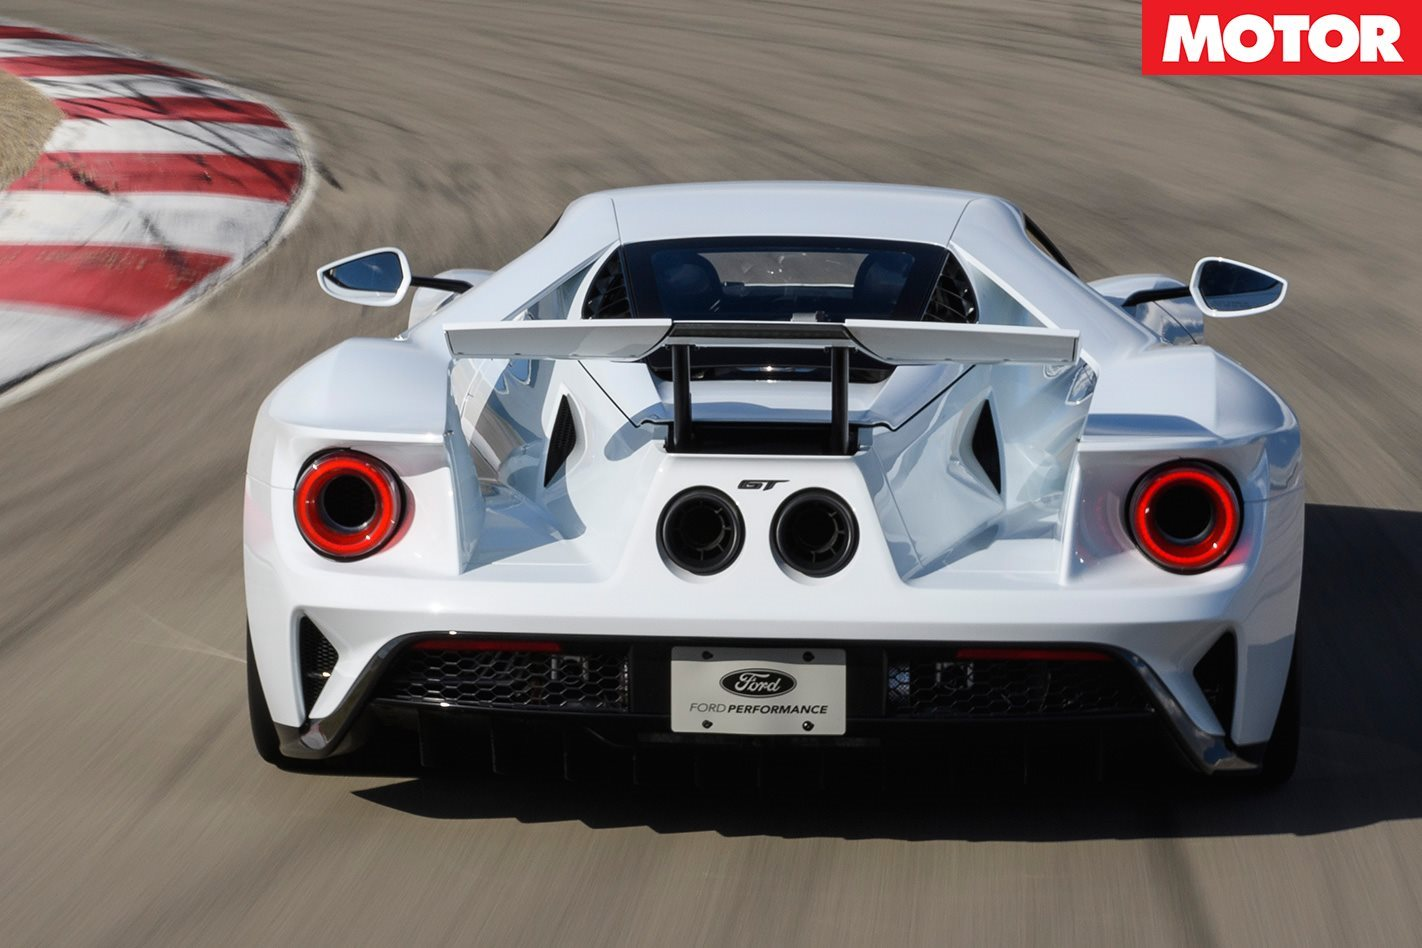 2017 Ford GT rear track